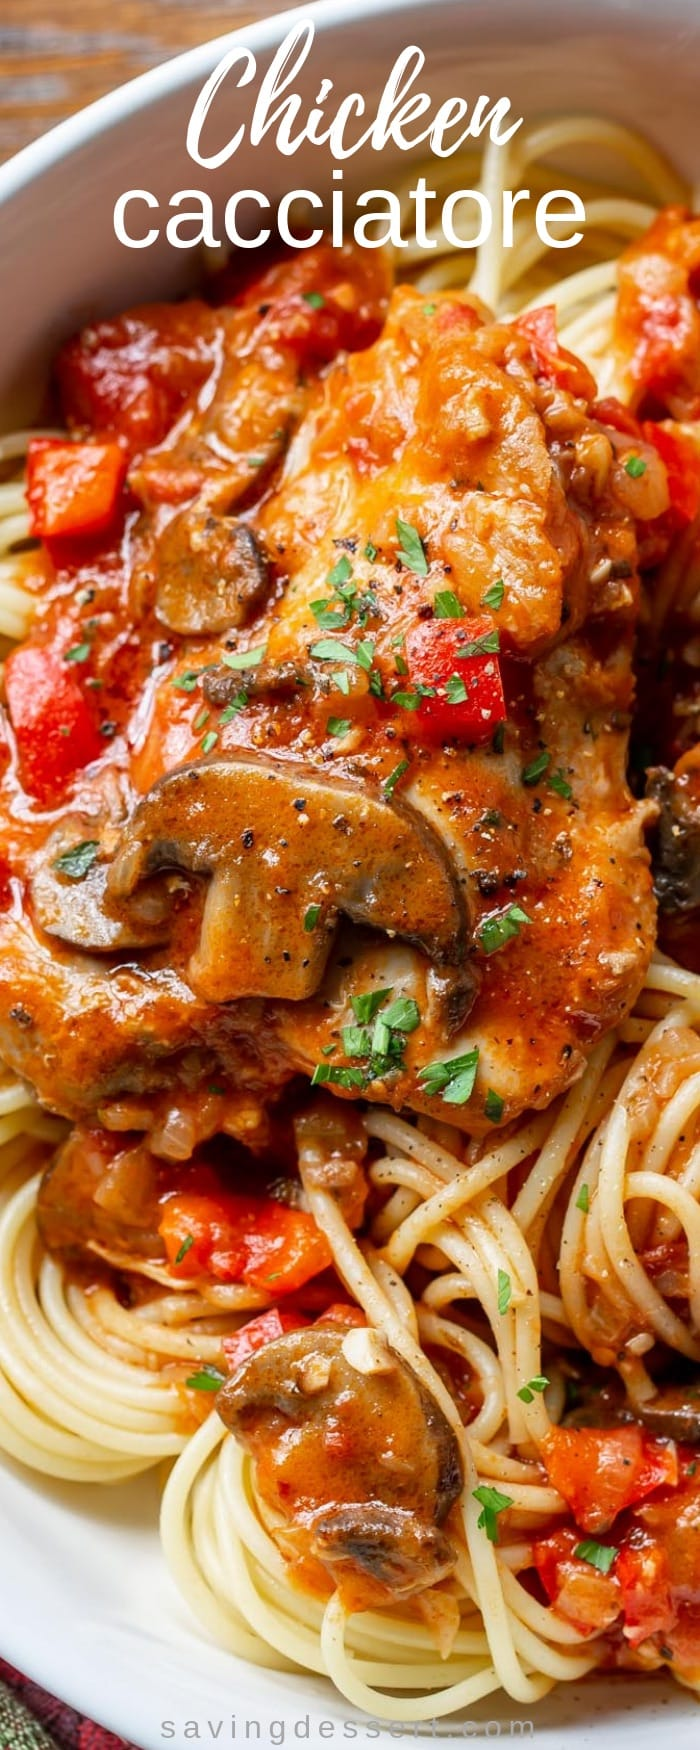 Really good Chicken Cacciatore is one of the most satisfying, delicious and comforting Italian dishes you can make at home. Great served with spaghetti or over polenta. #savingroomfordessert #chicken #chickenthighs #chickencacciatore #cacciatore #comfortfood #italiandish #italian